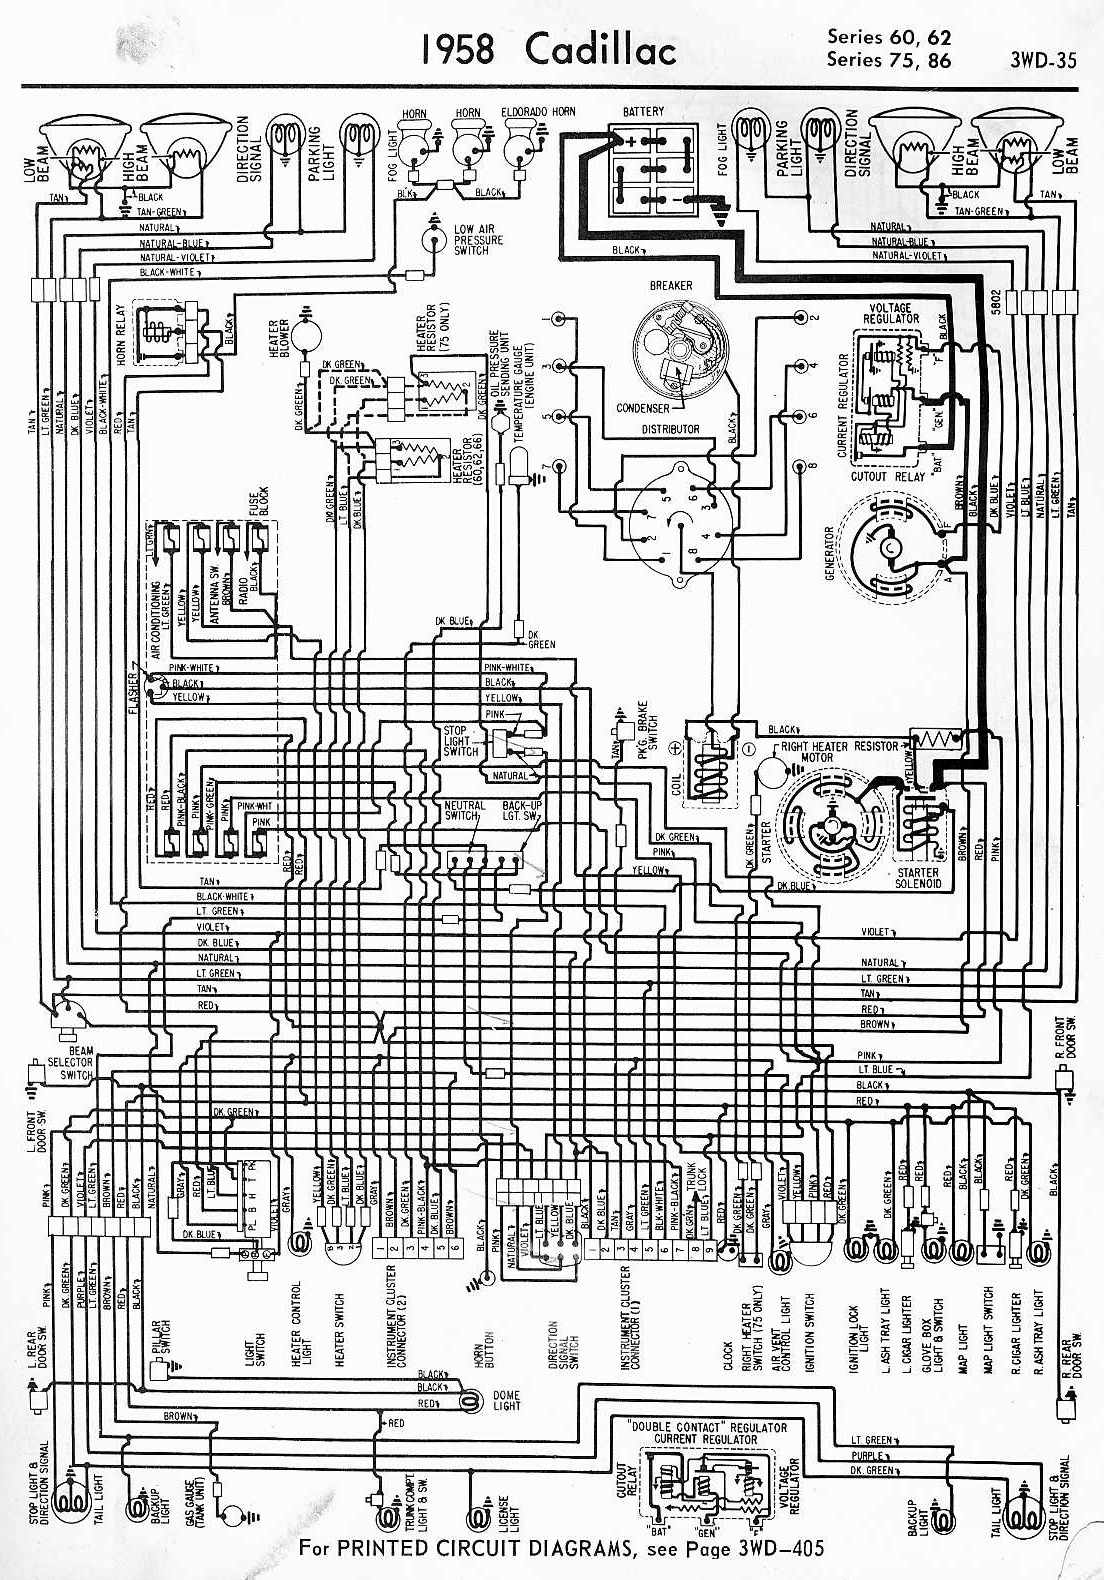 Lexus Lx470 Wiring Diagram Download Automotive Diagrams Gs300 Ac 1948 Cadillac Enthusiast U2022 Rh Rasalibre Co